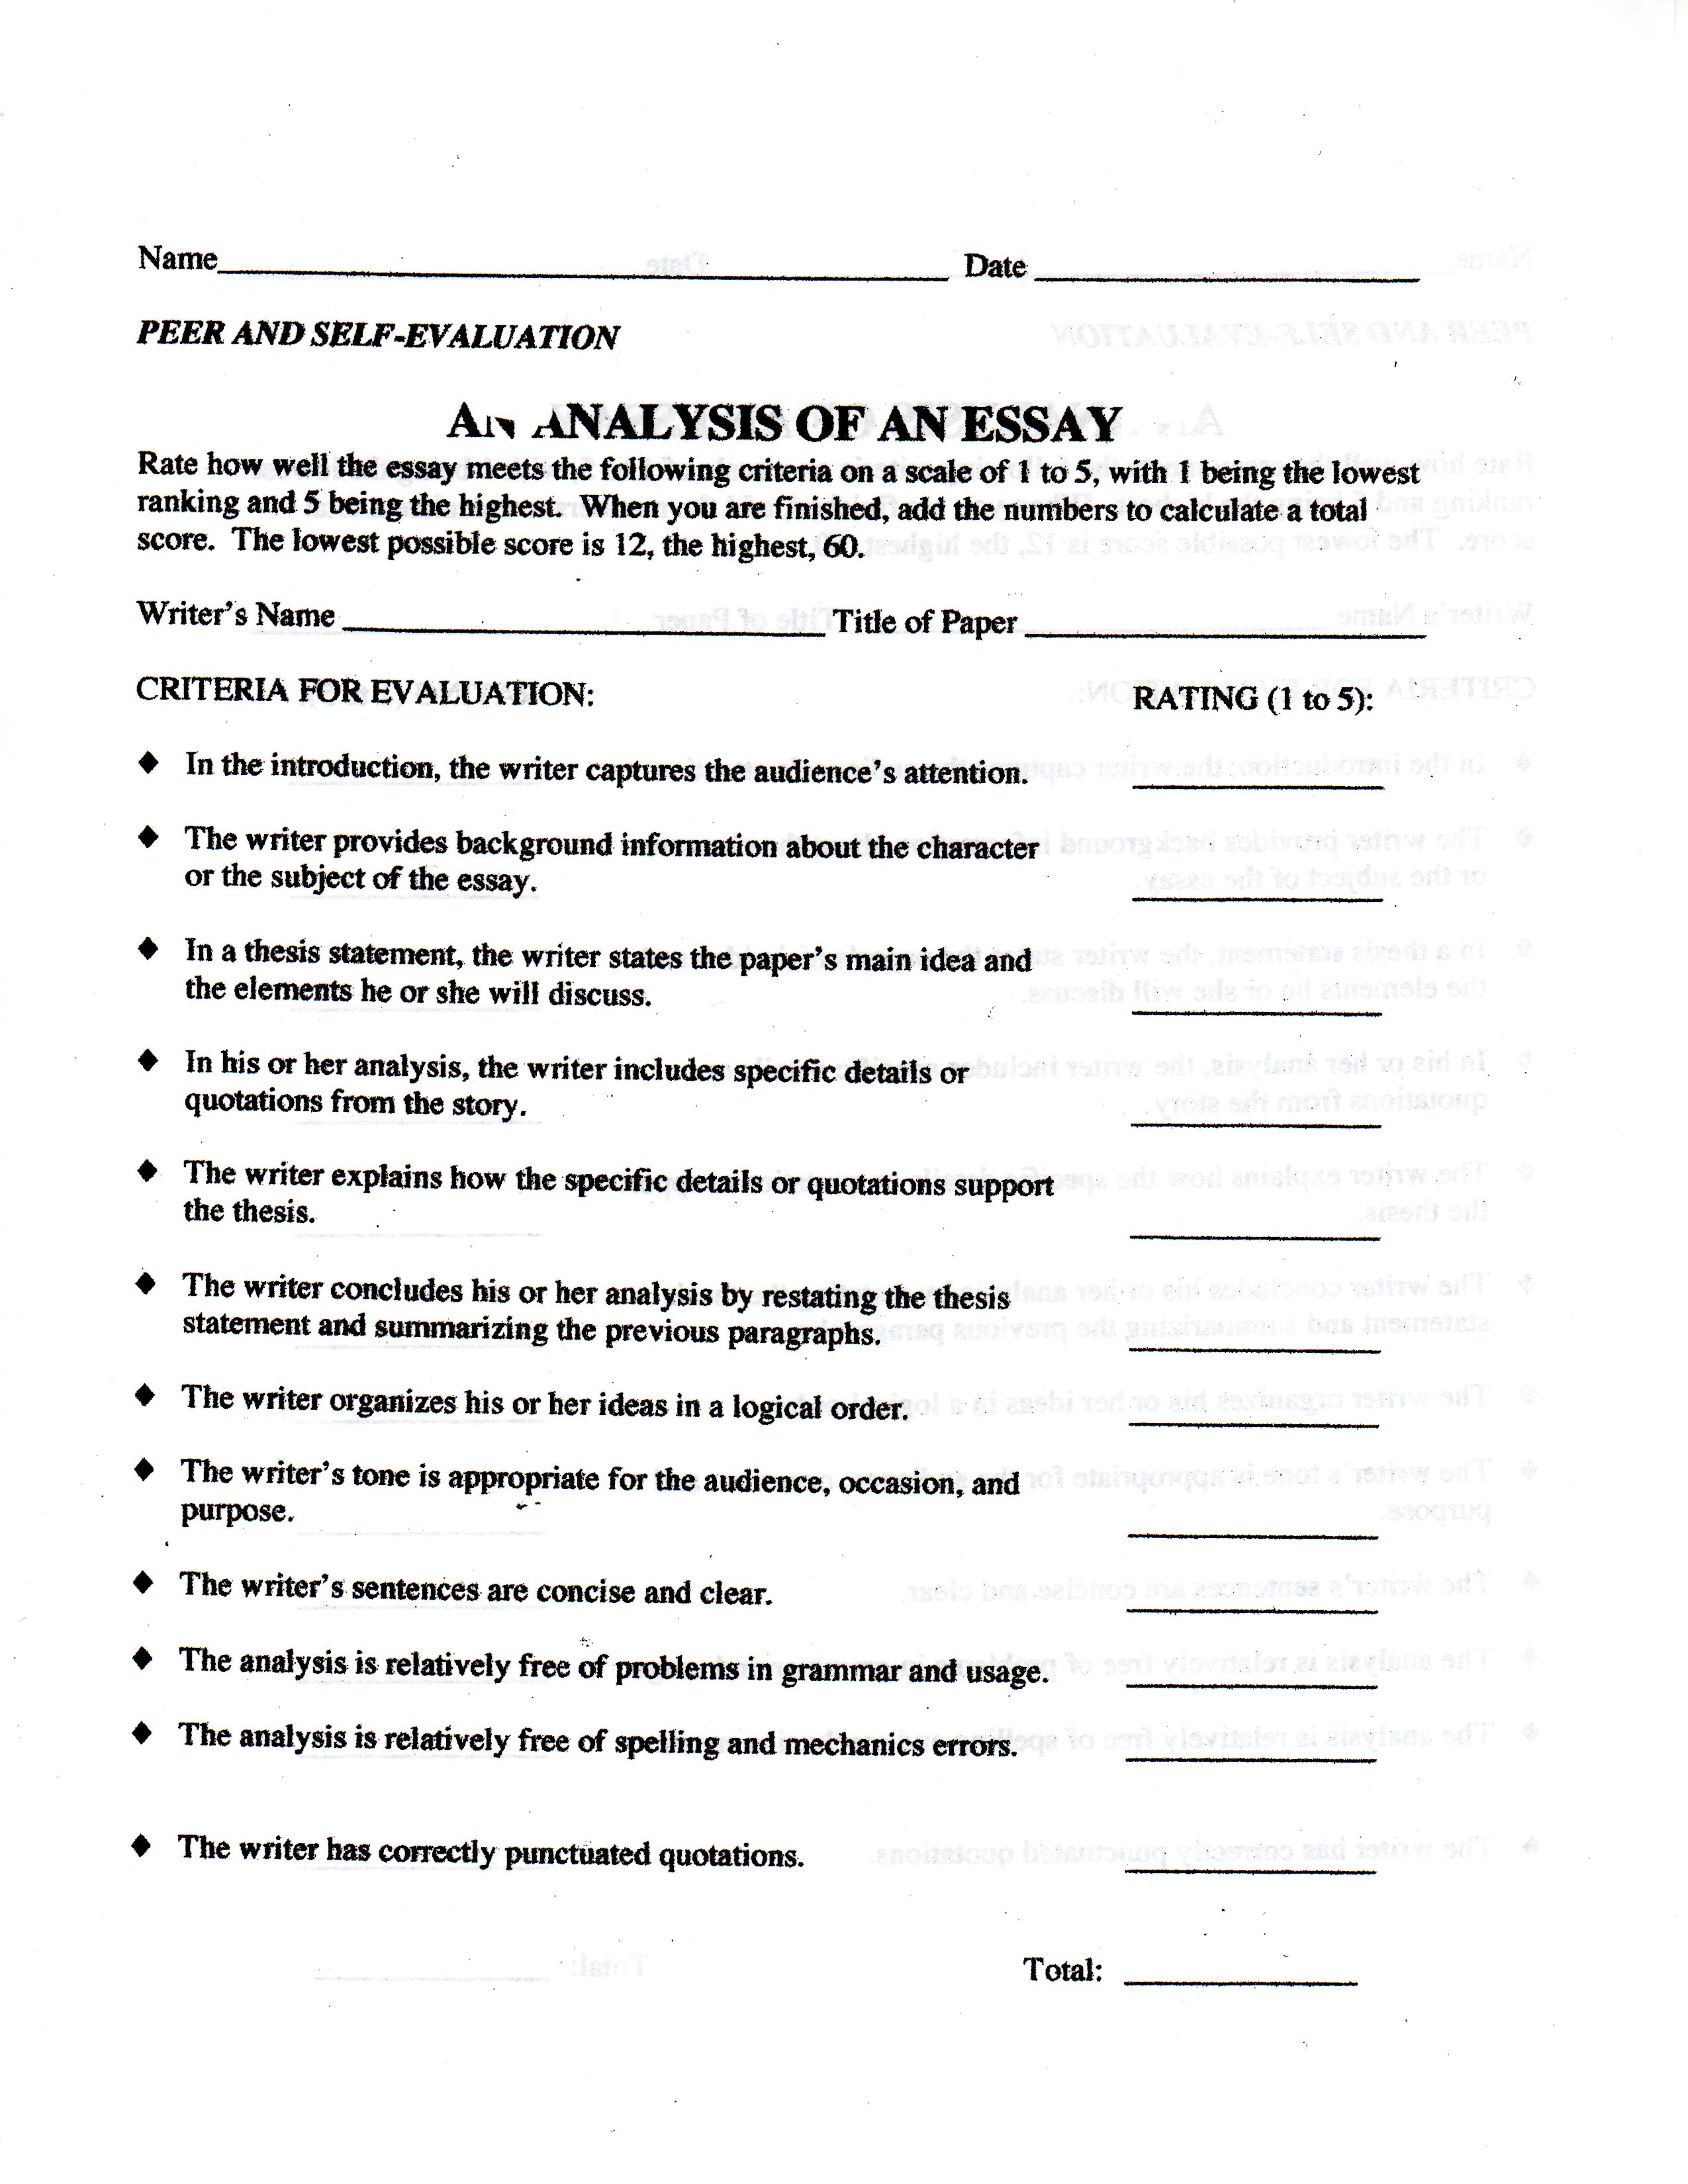 mrs thomas english class essay peer self evaluation form